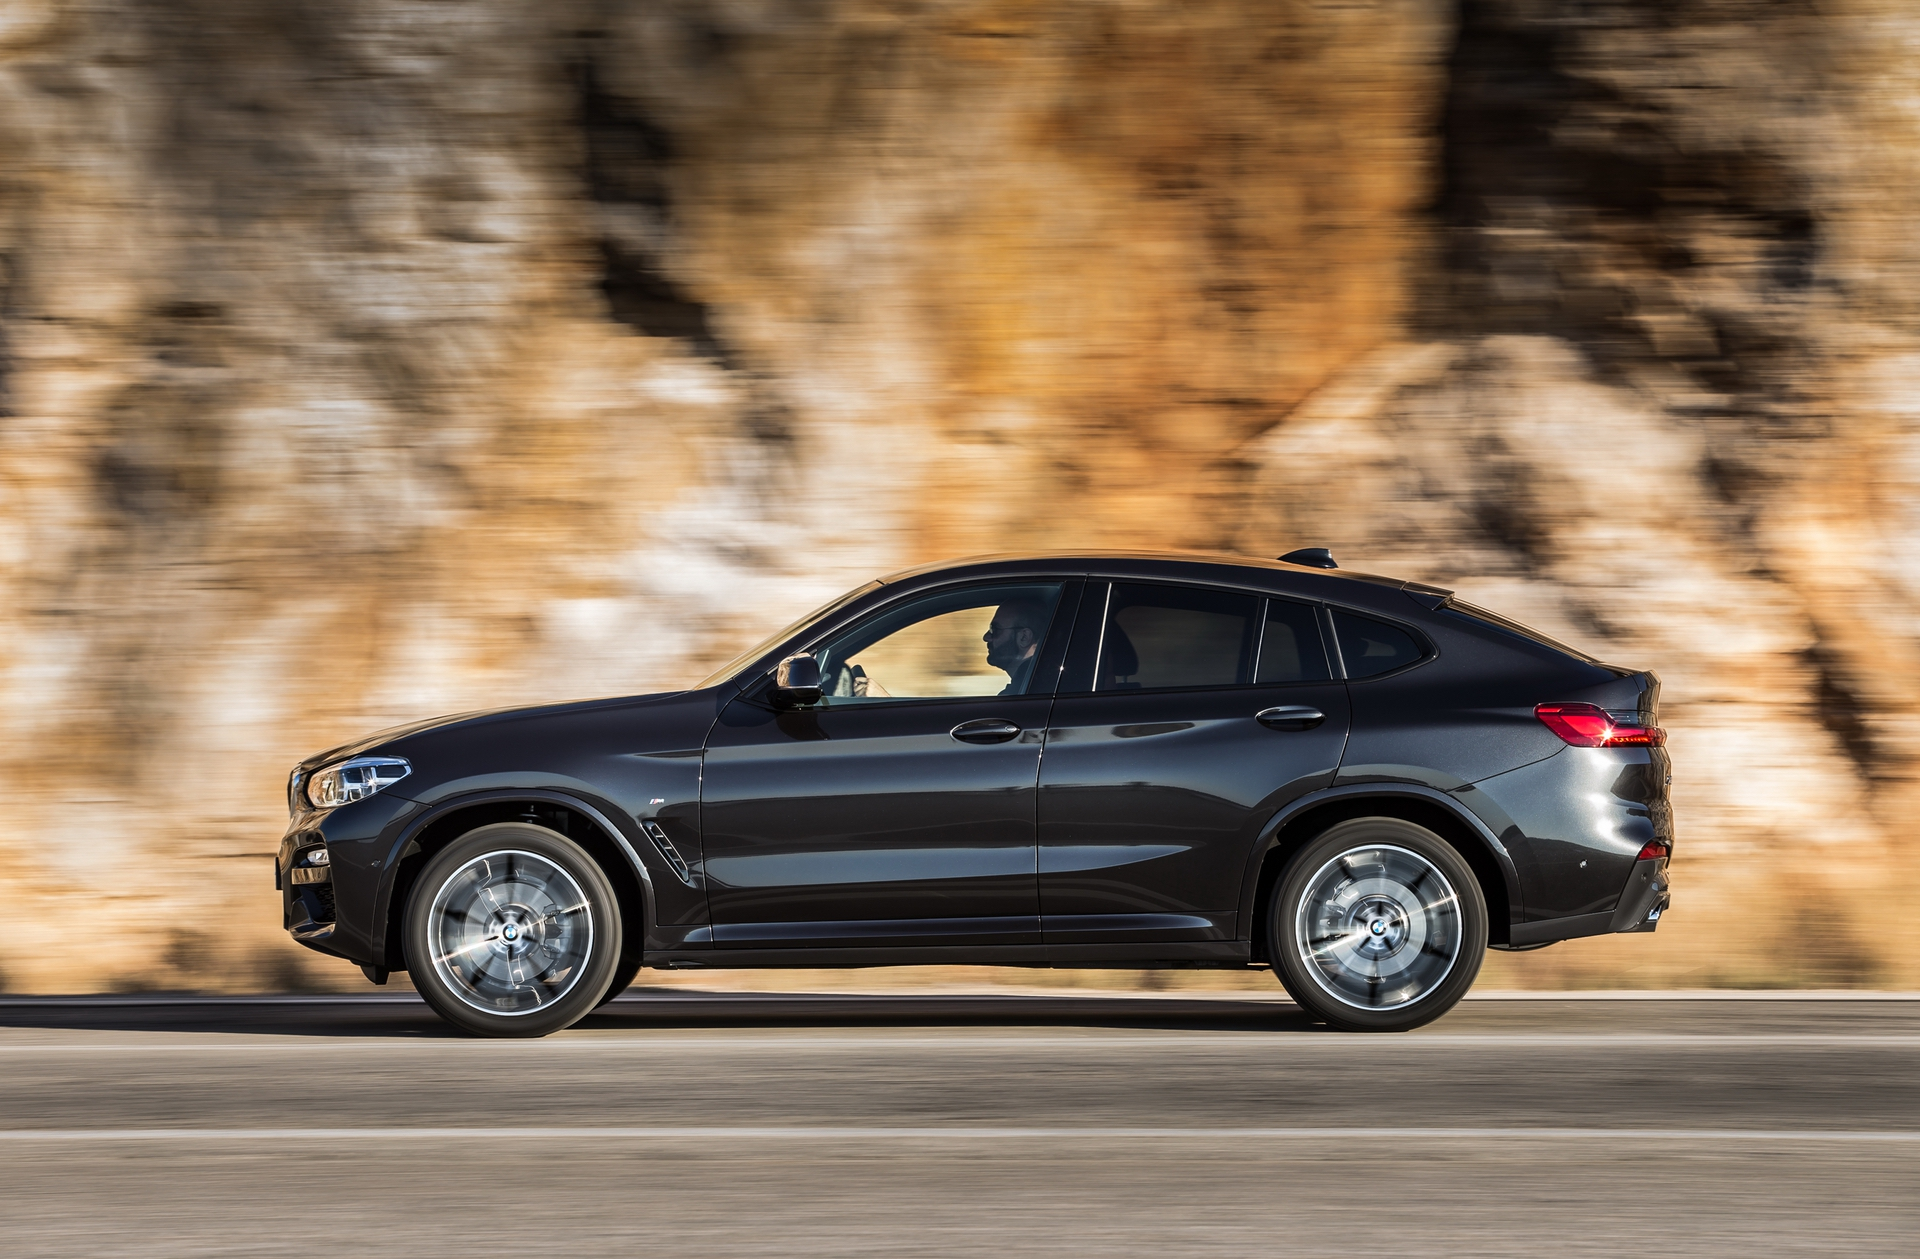 BMW_X4_greek_presskit_0089